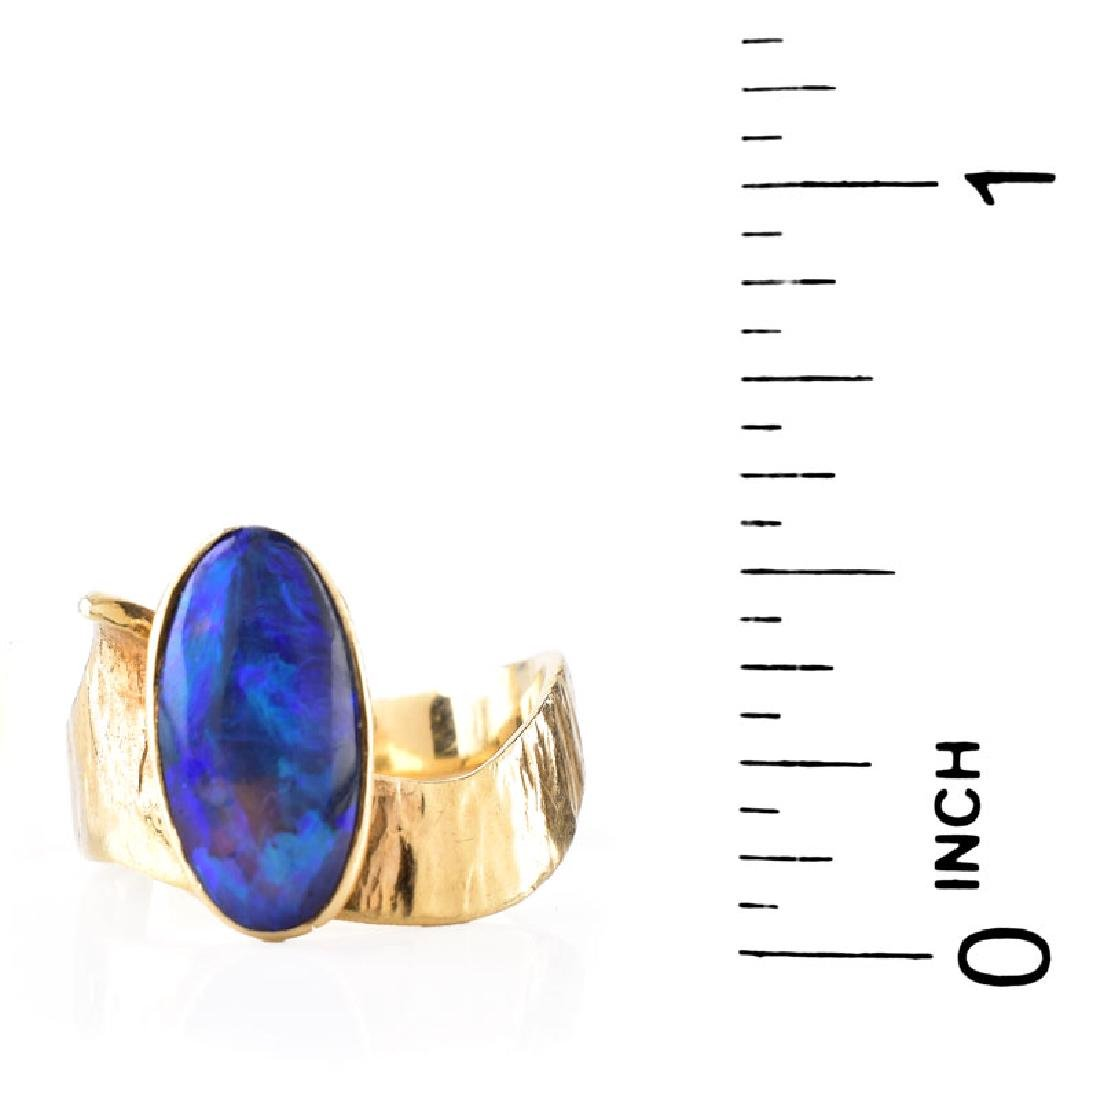 Vintage Oval Cabochon Black Opal and 14 Karat Yellow - 6